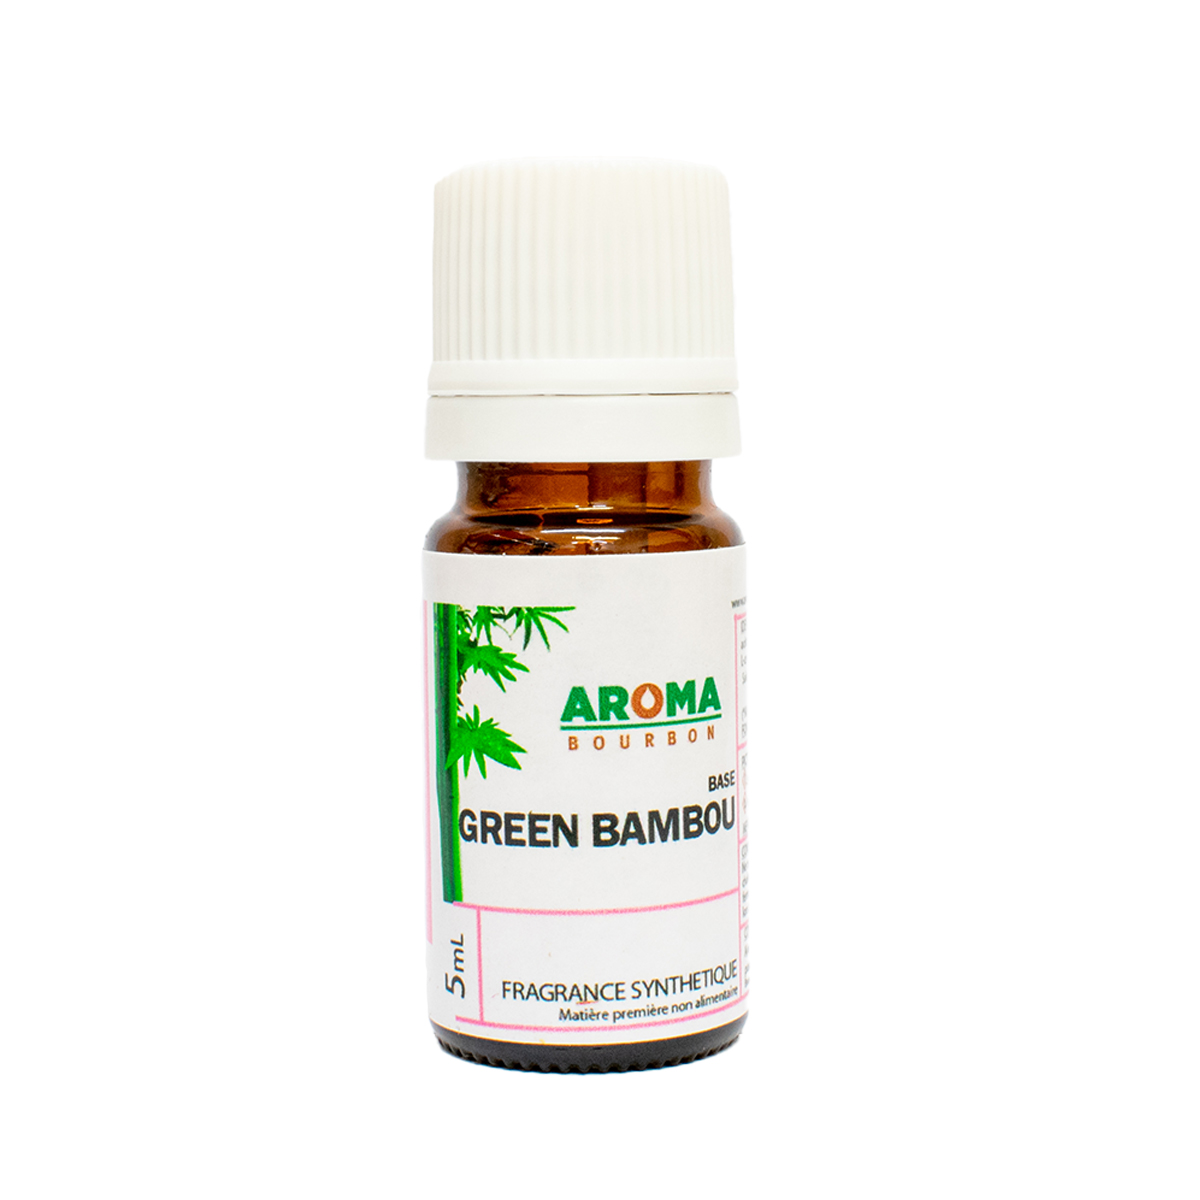 GREEN BAMBOU - FRAGRANCE SYNTHÉTIQUE